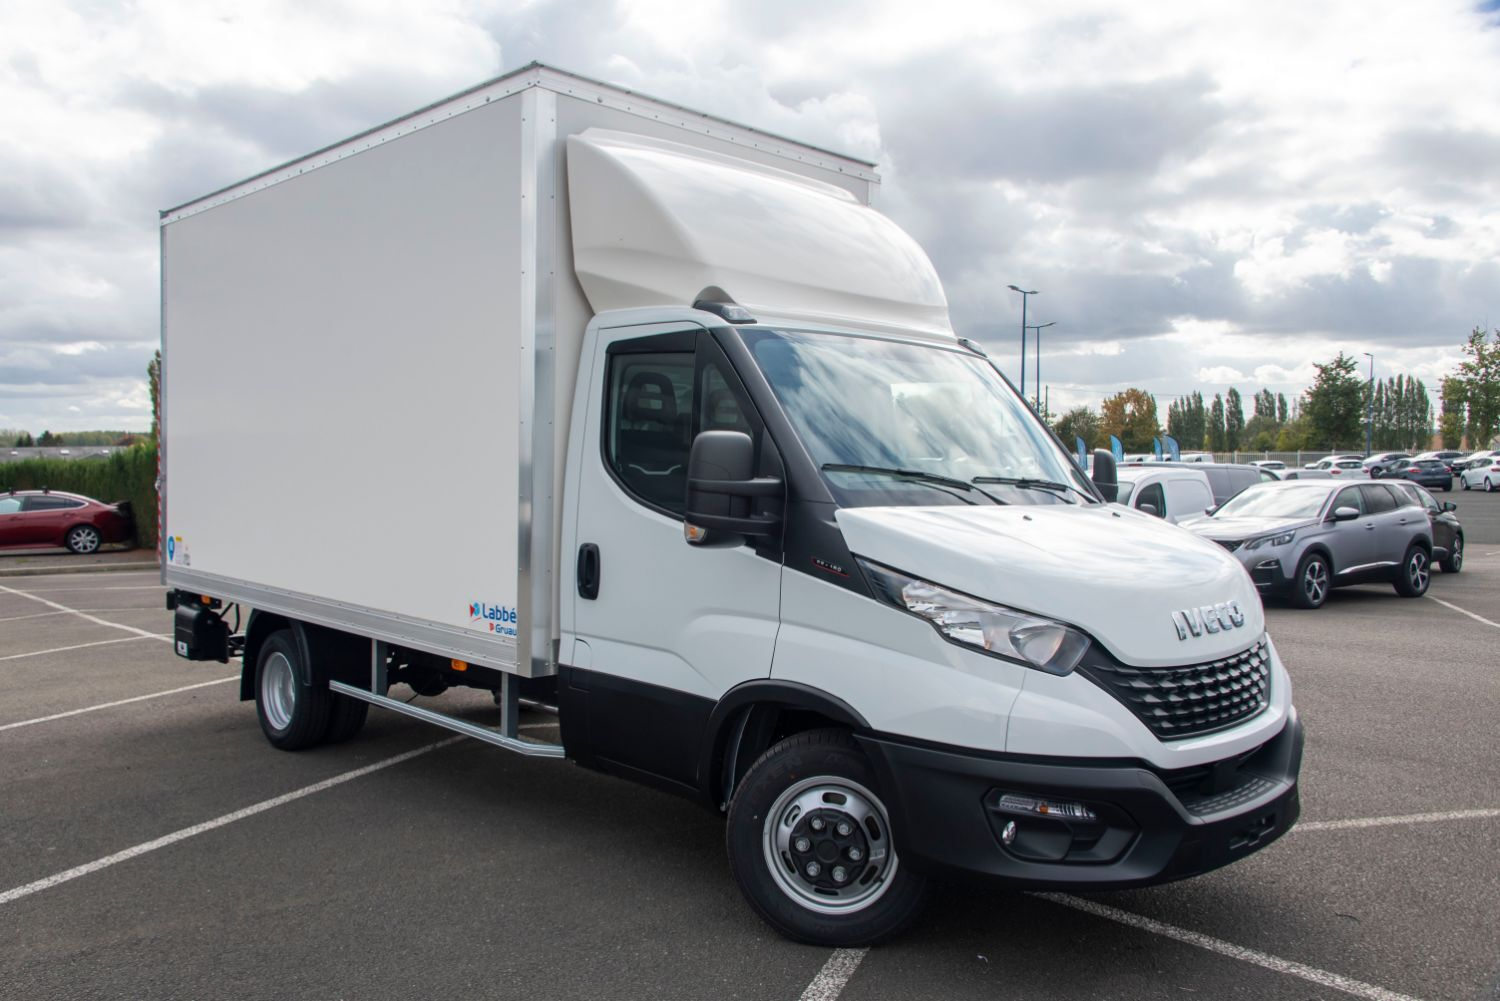 IVECO DAILY III 35C16H 3.0L 160 CH GV 20 M3 / HAYON 634 € HT/MOIS